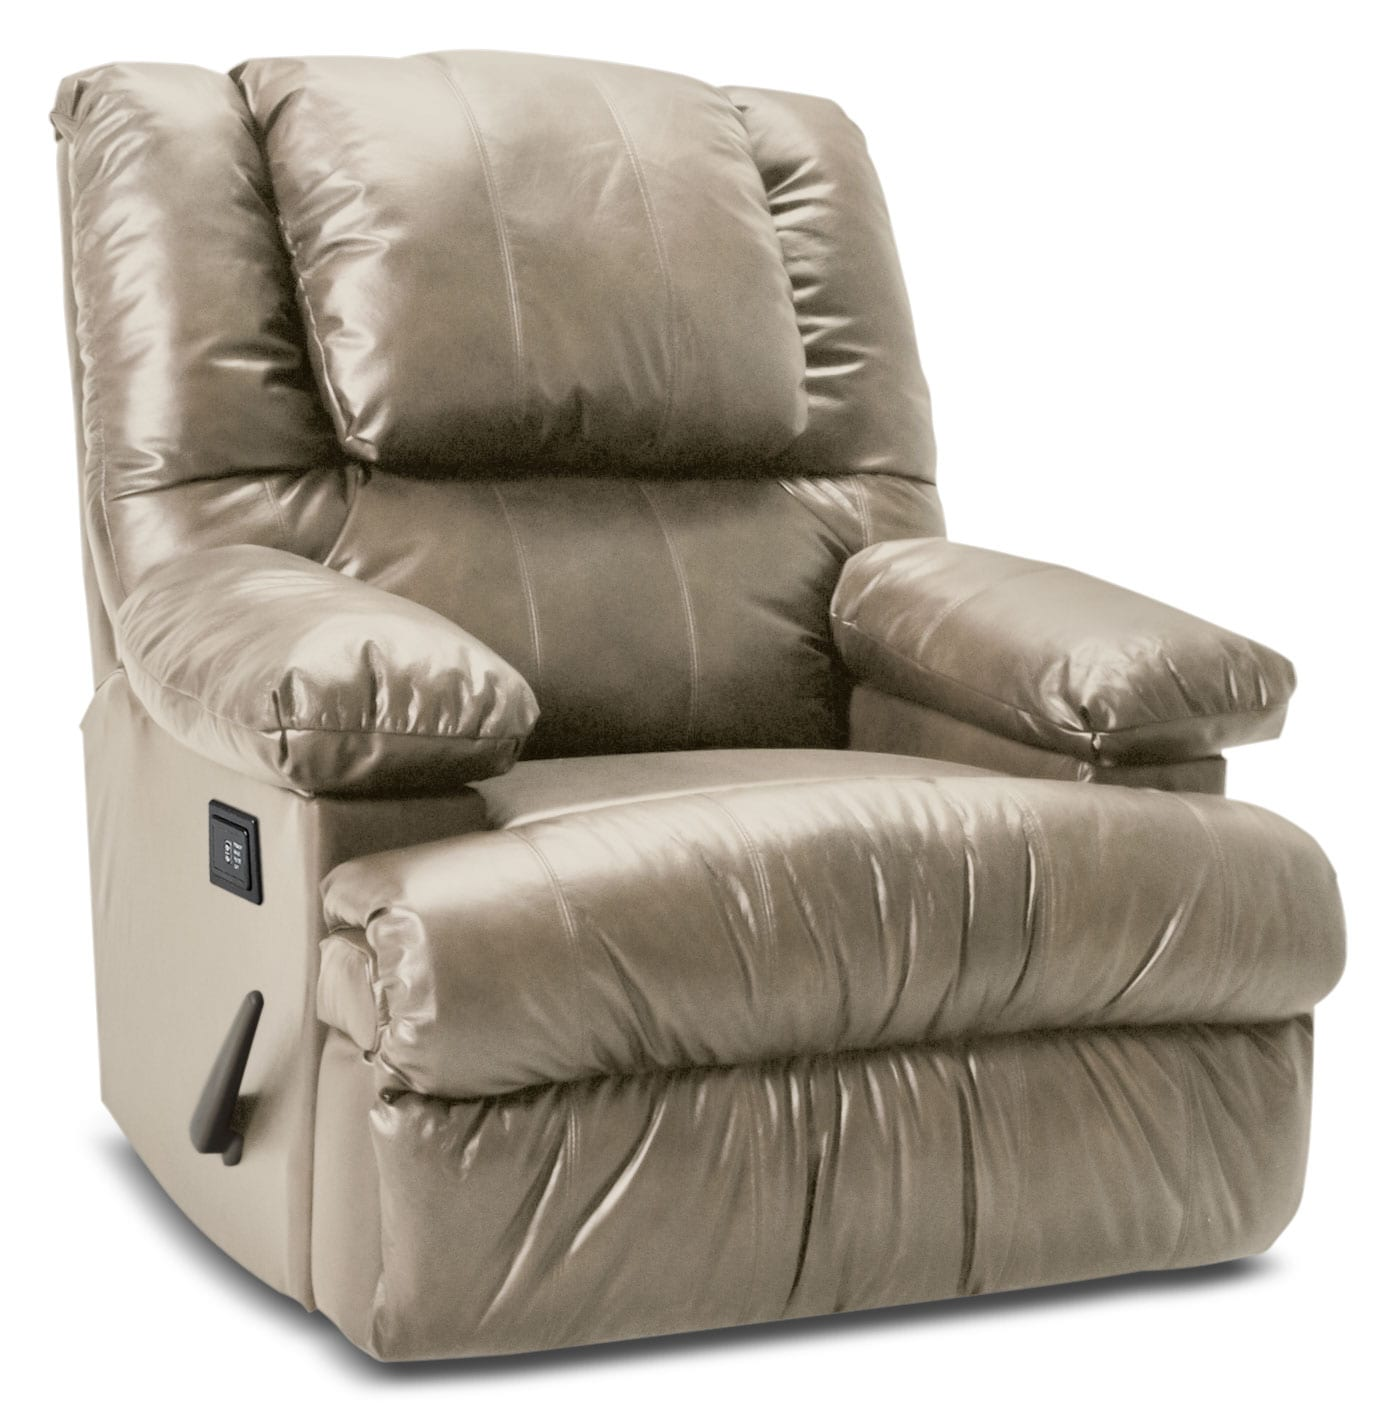 Designed2B Recliner 5598 Bonded Leather Massage Recliner with Storage Arms - Putty